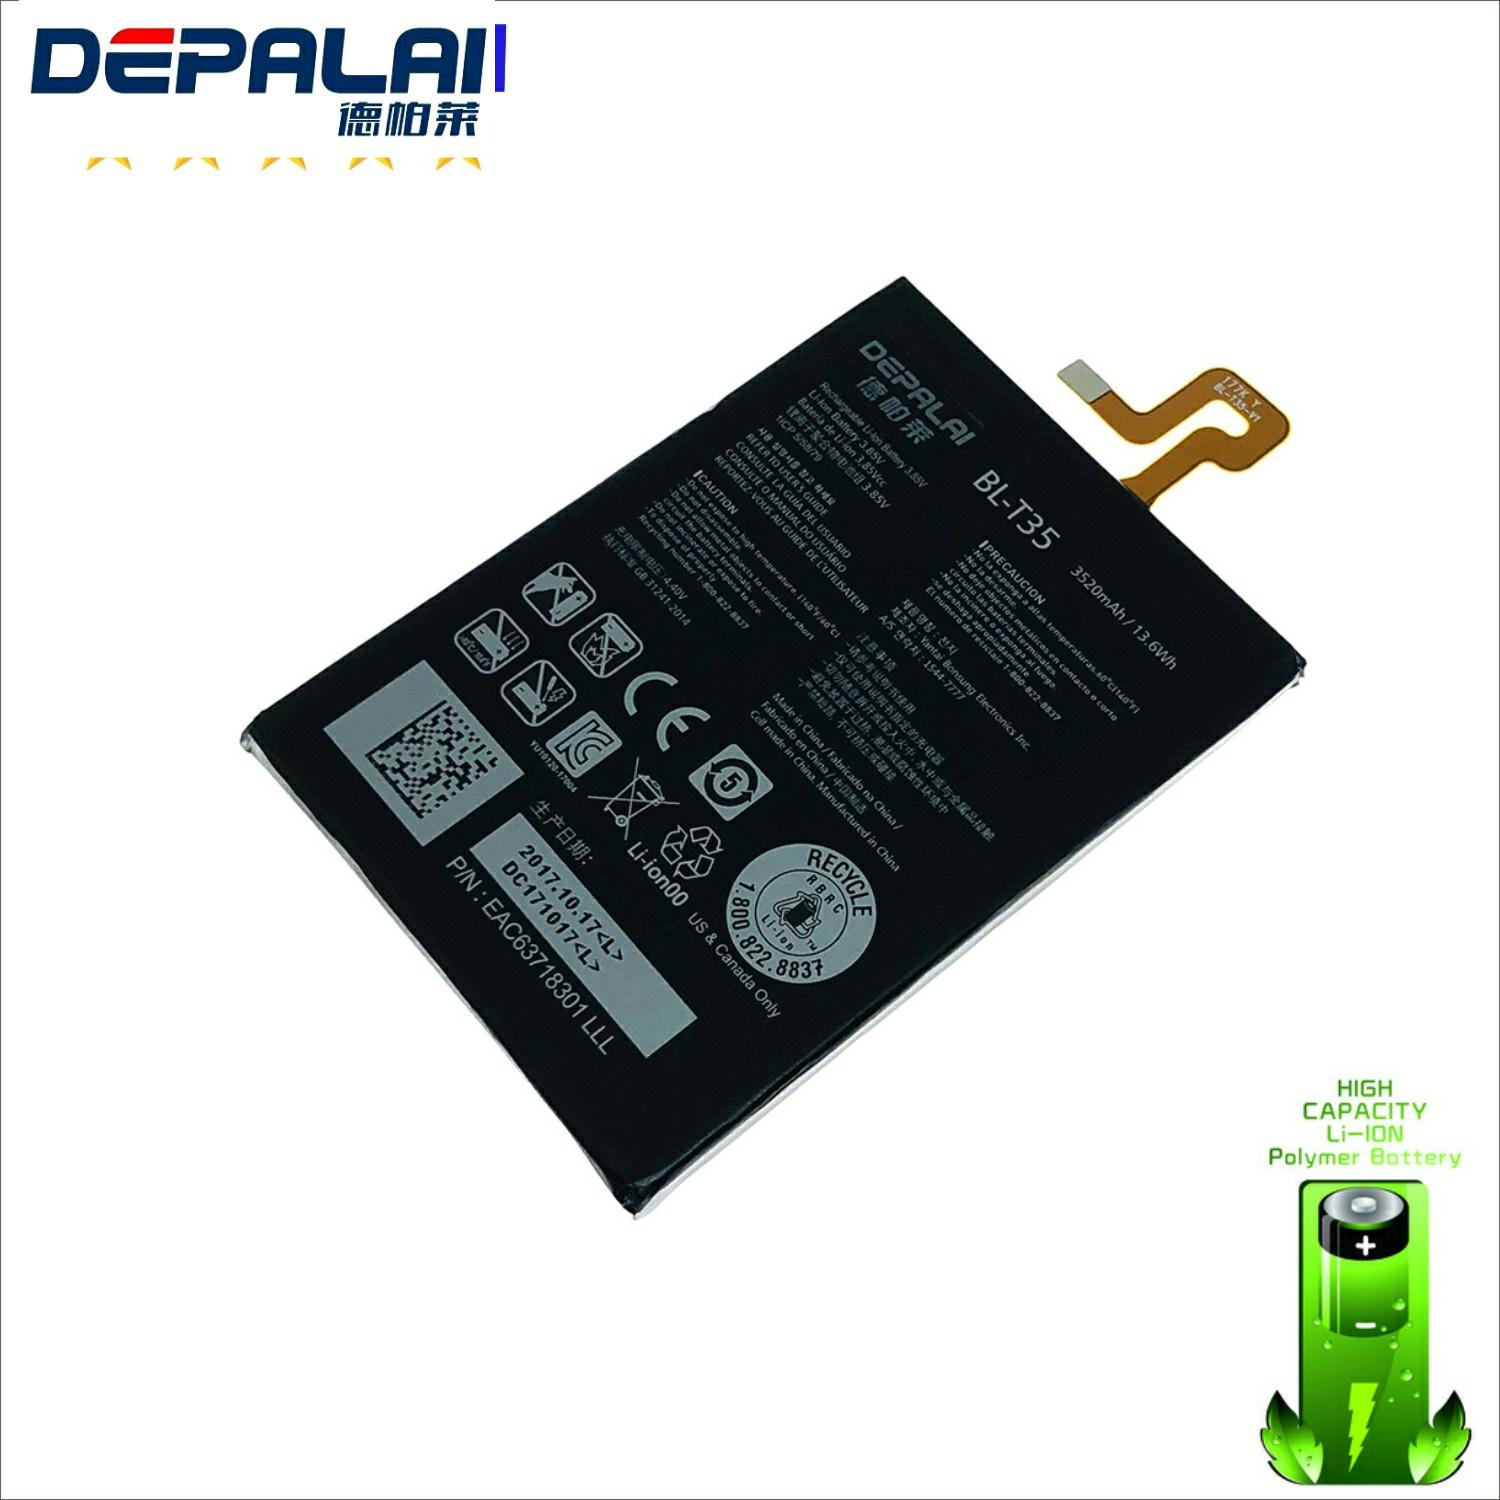 High Quality 3520mAh 3.85V DC <font><b>BL</b></font>-<font><b>T35</b></font> Replacement Battery For LG Google 2 Pixel 2 XL Batteries image